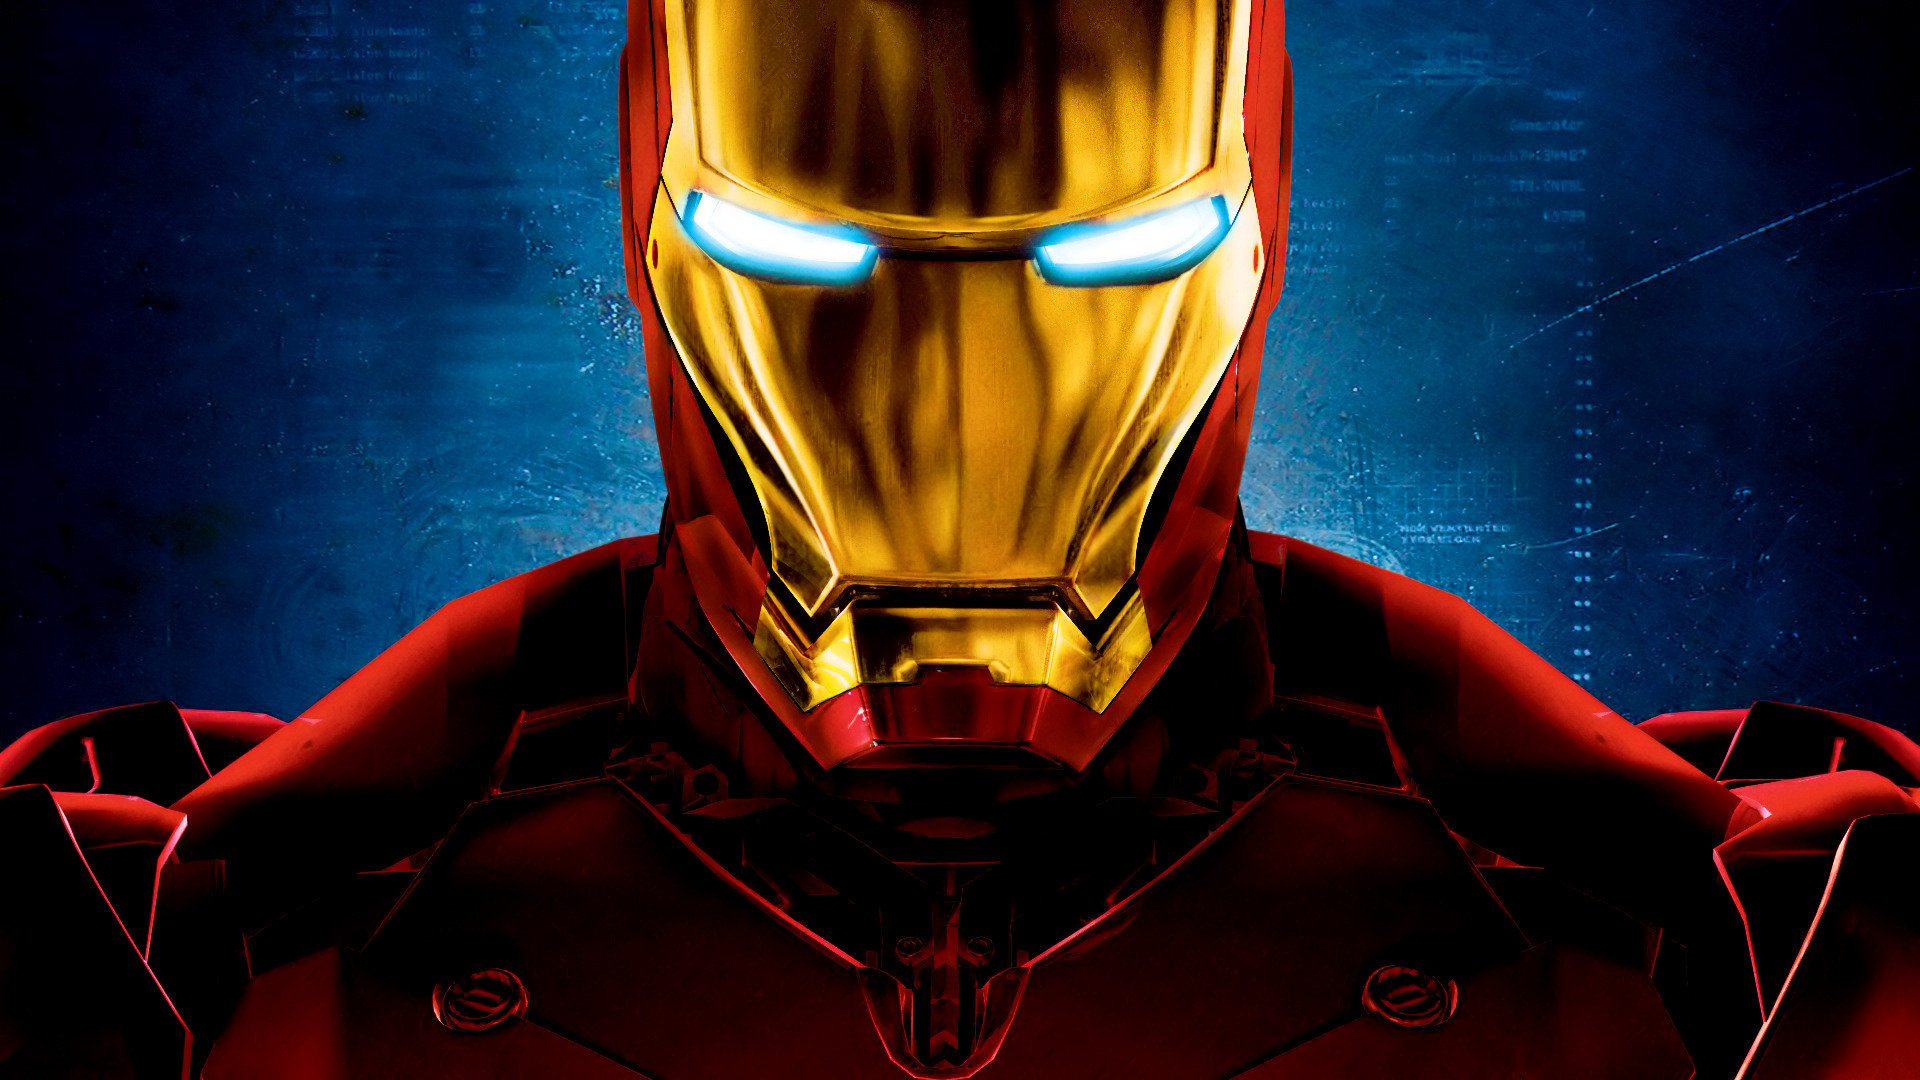 Download hd 1080p Iron Man desktop background ID:149 for free